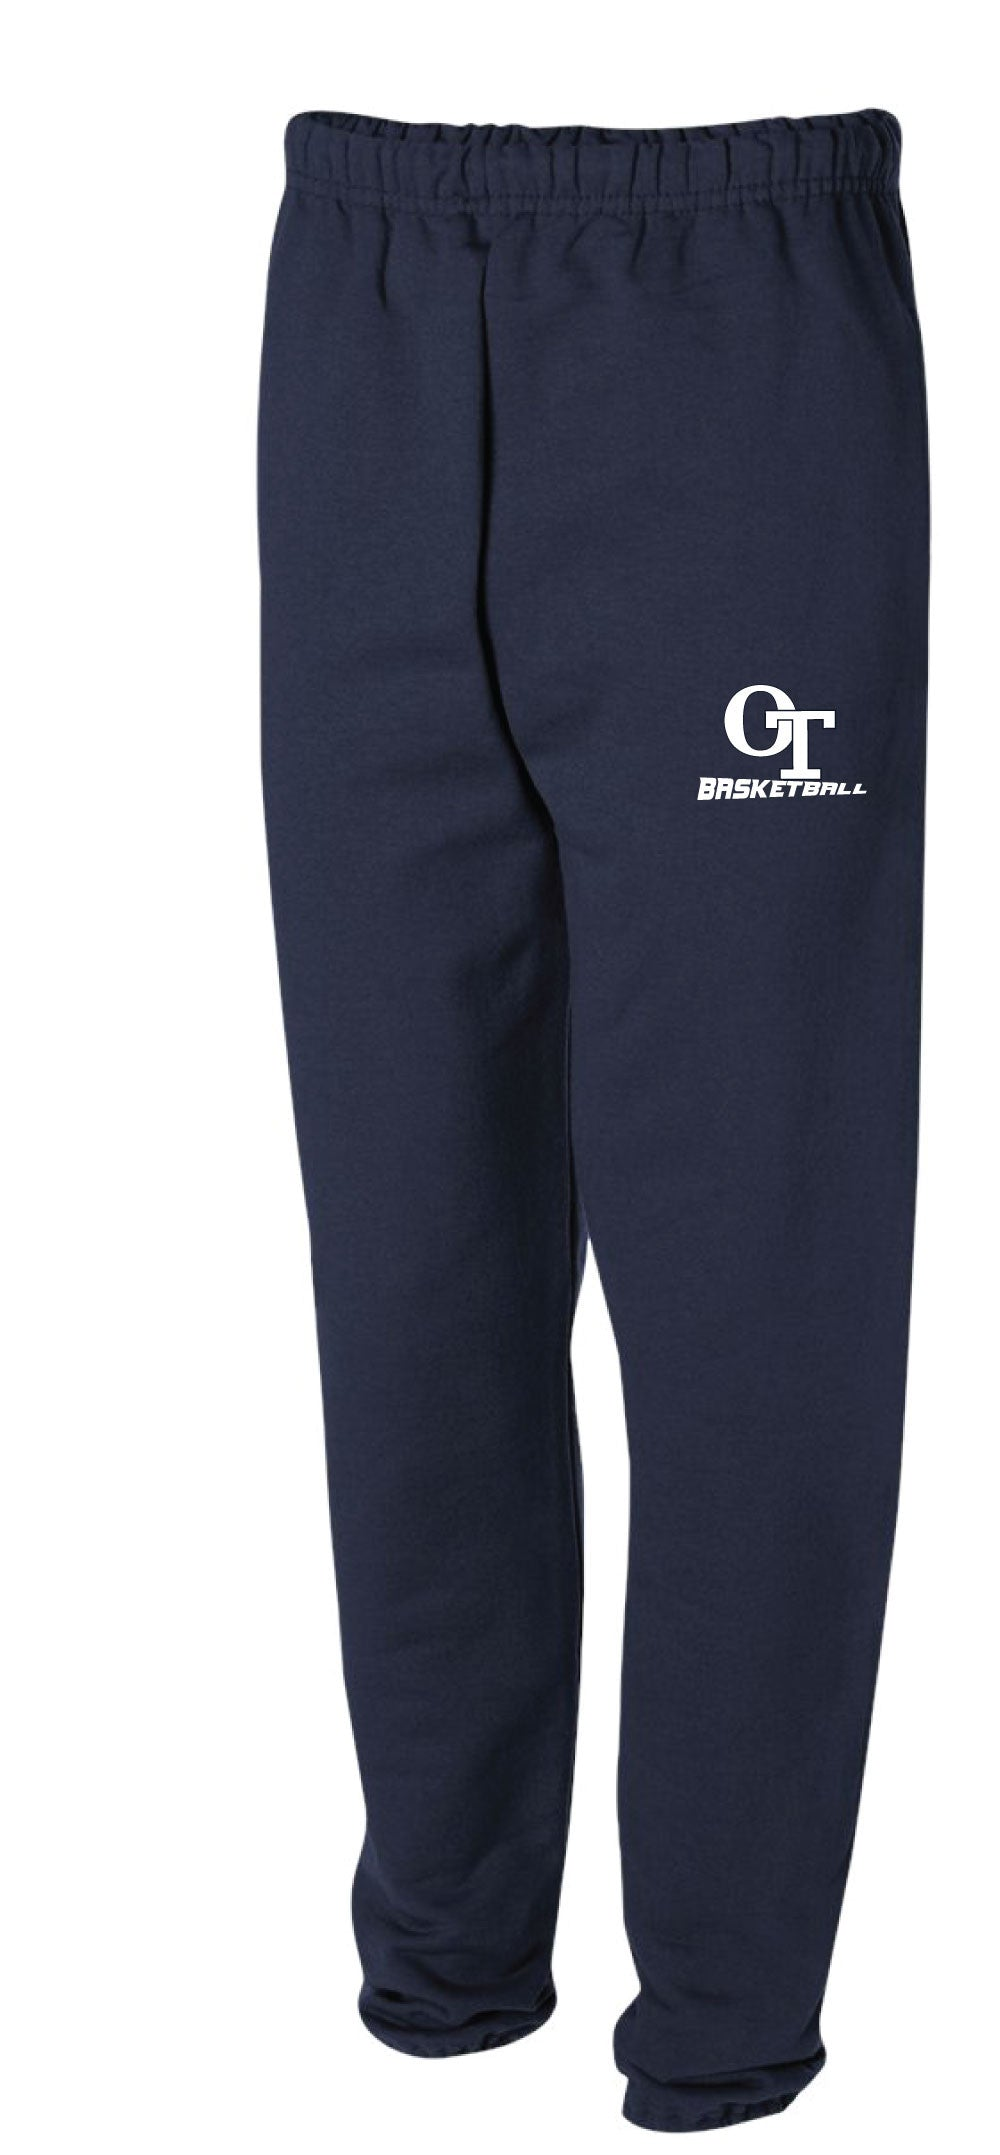 OT Basketball Pocketed Sweatpants